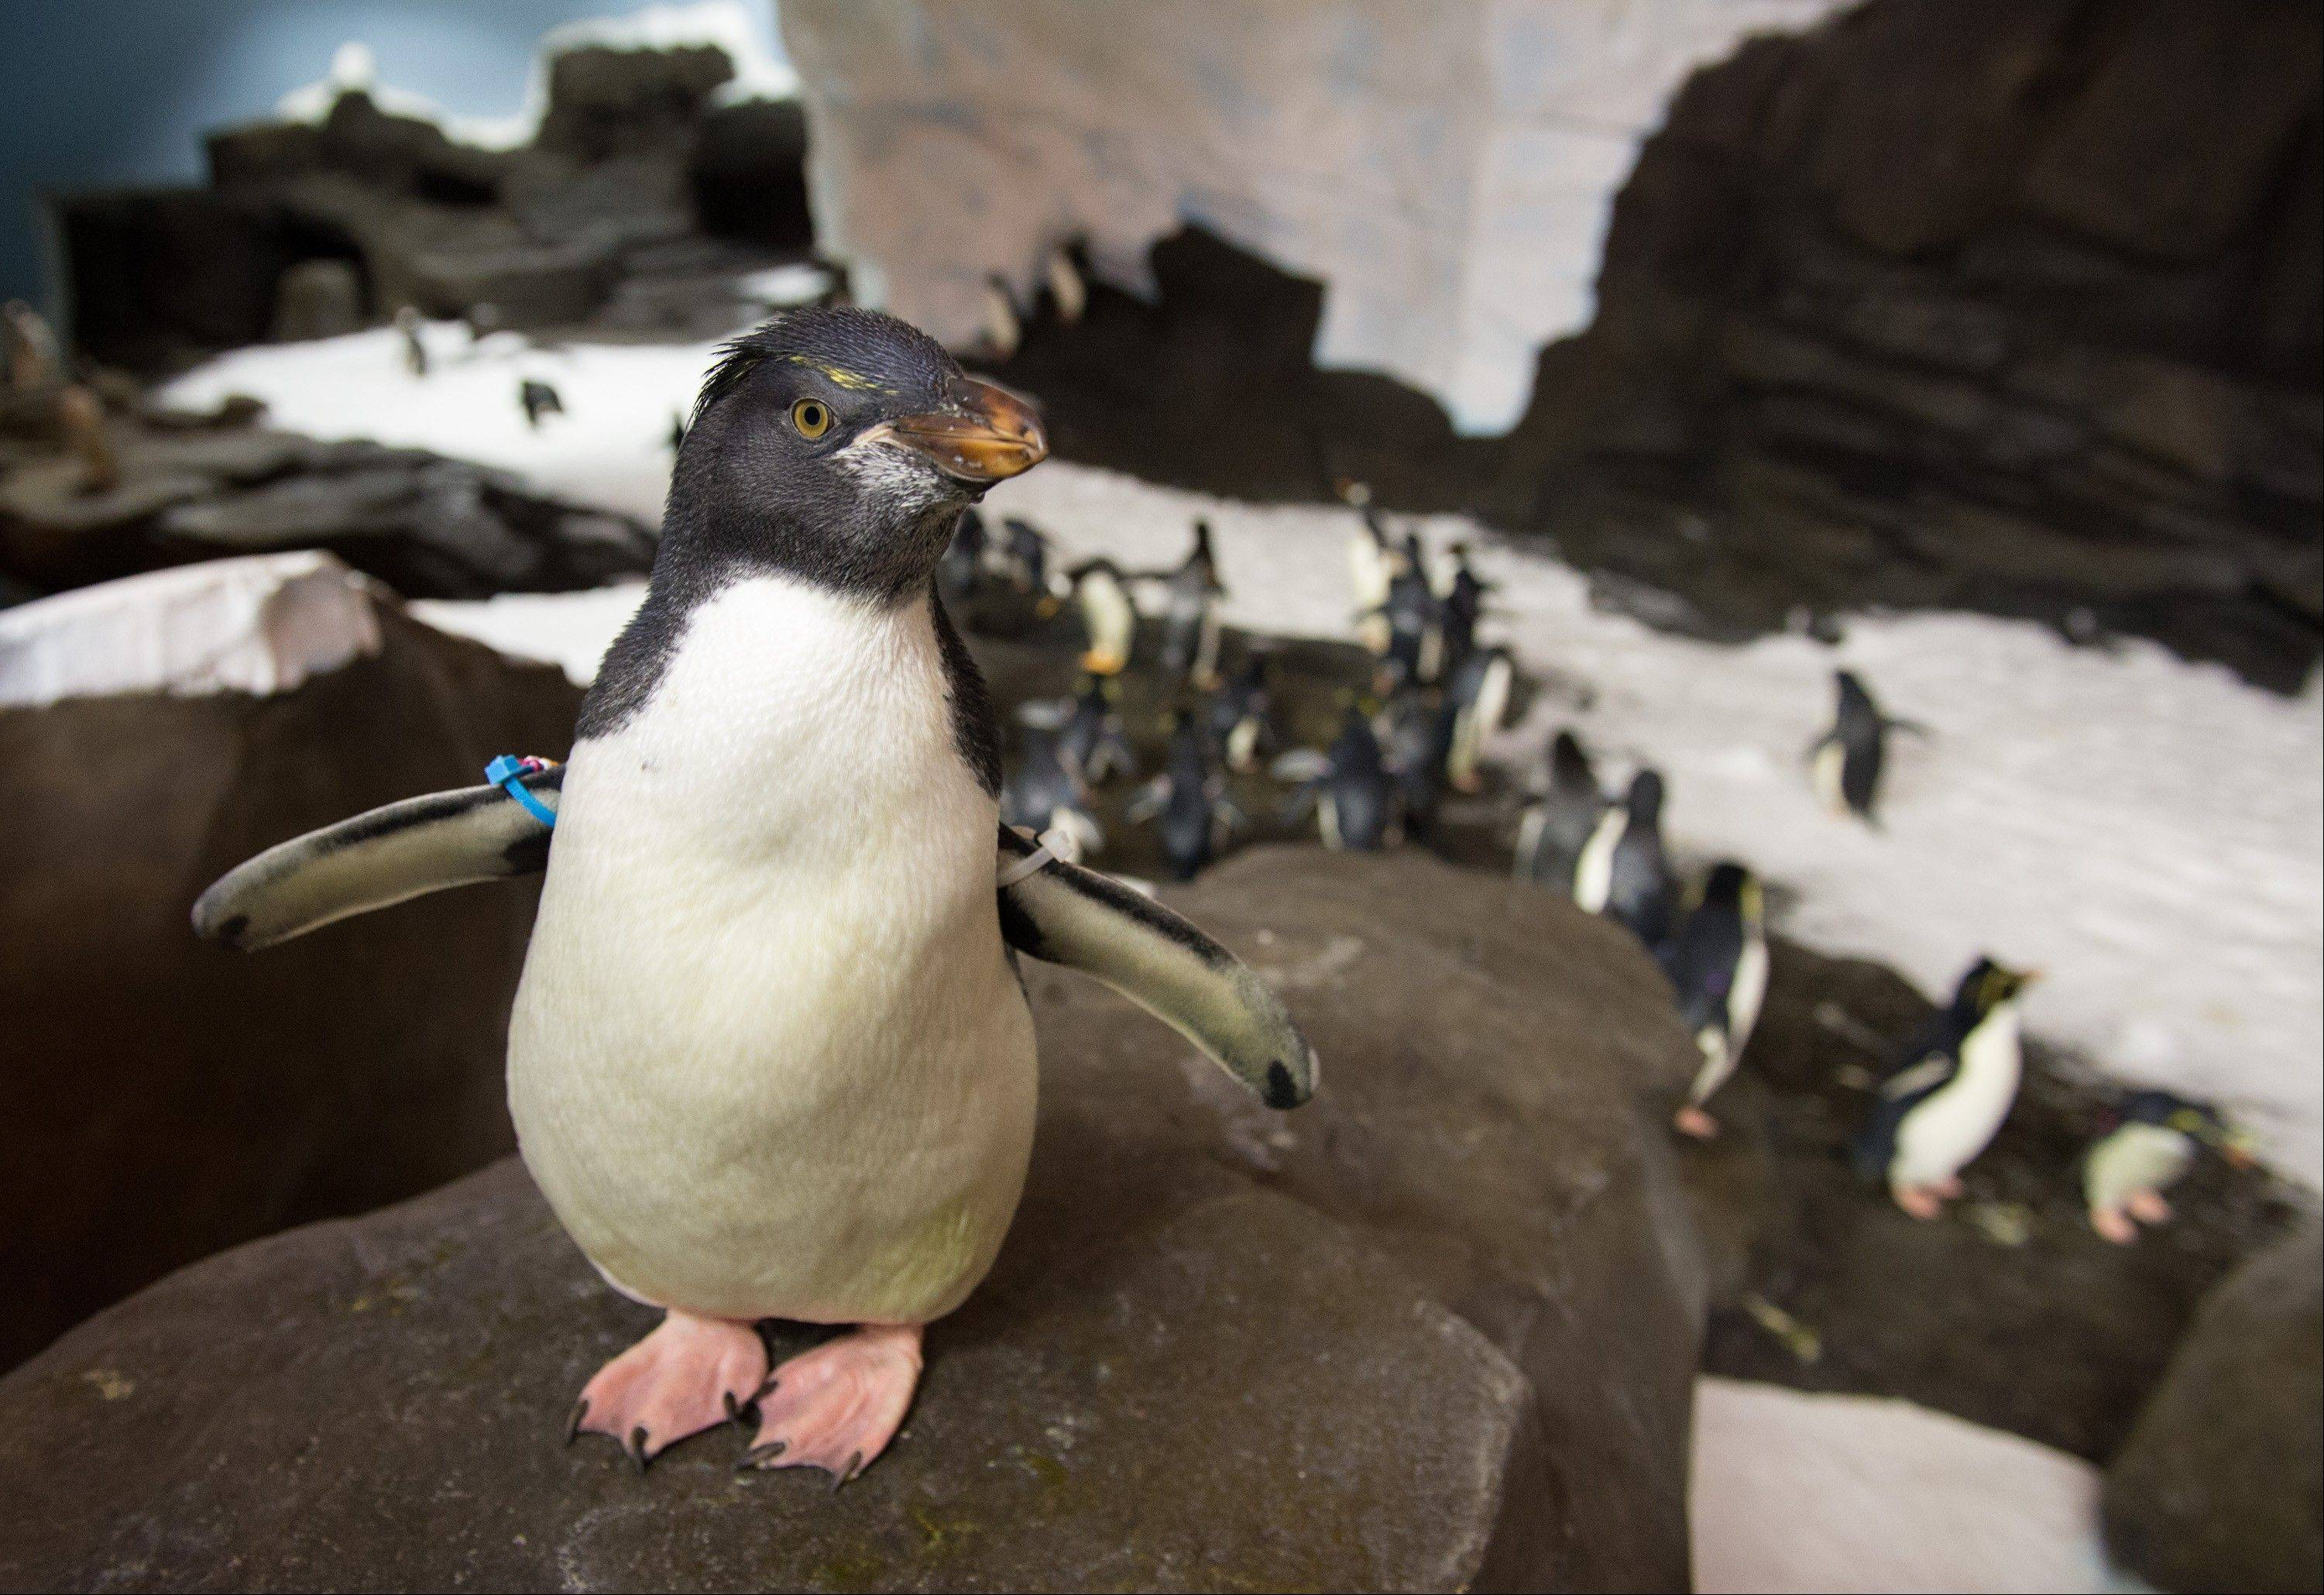 A rockhopper penguin is part of the new exhibit at SeaWorld Orlando.